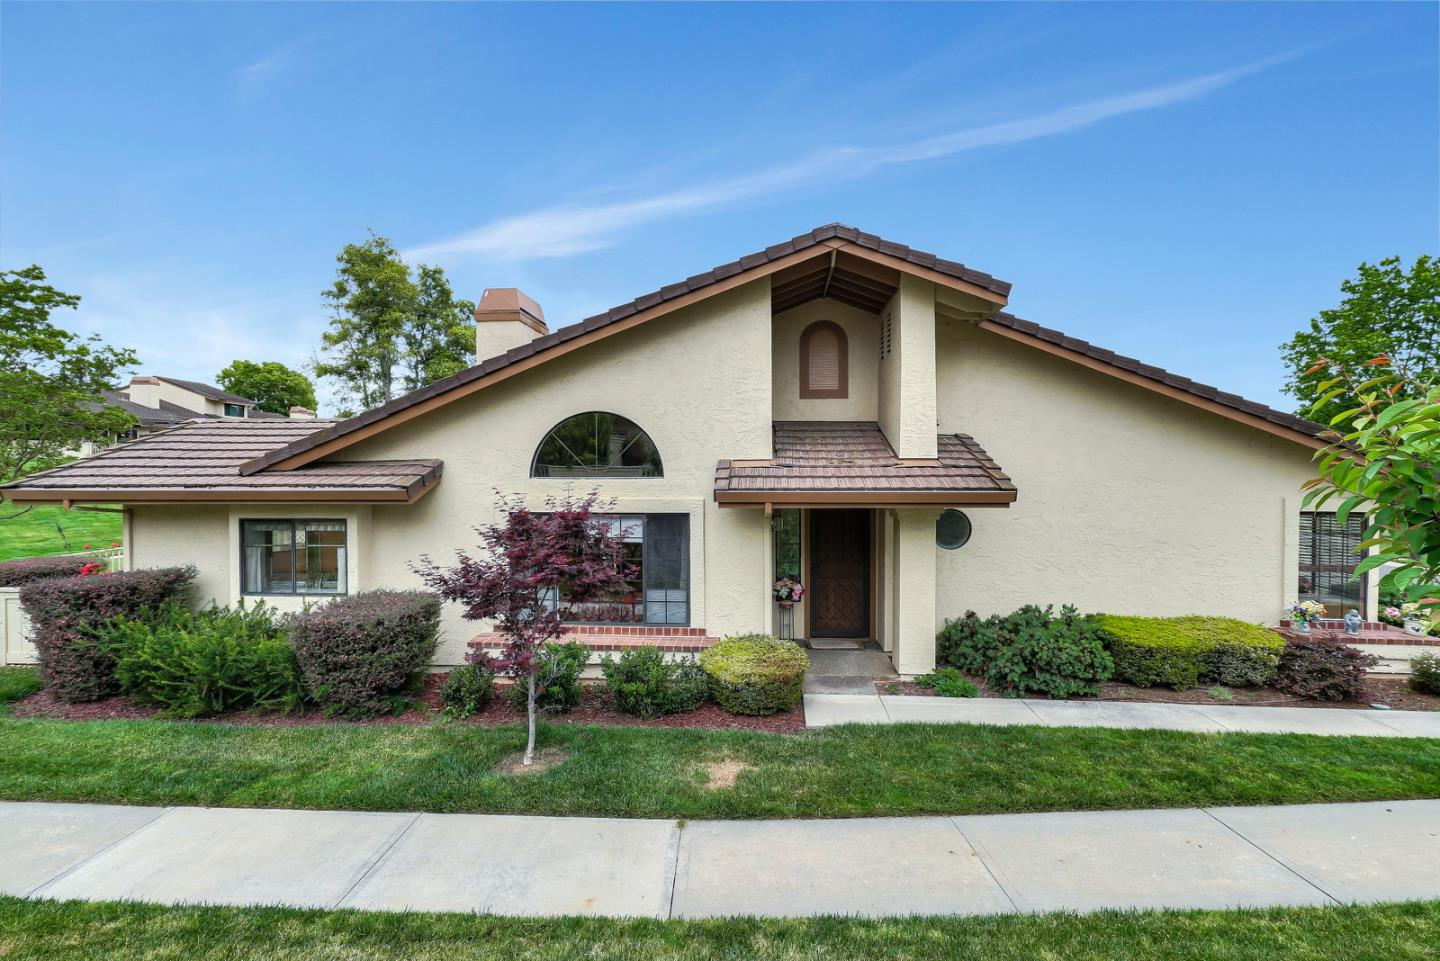 3352 Lake Lesina DR, Evergreen in Santa Clara County, CA 95135 Home for Sale